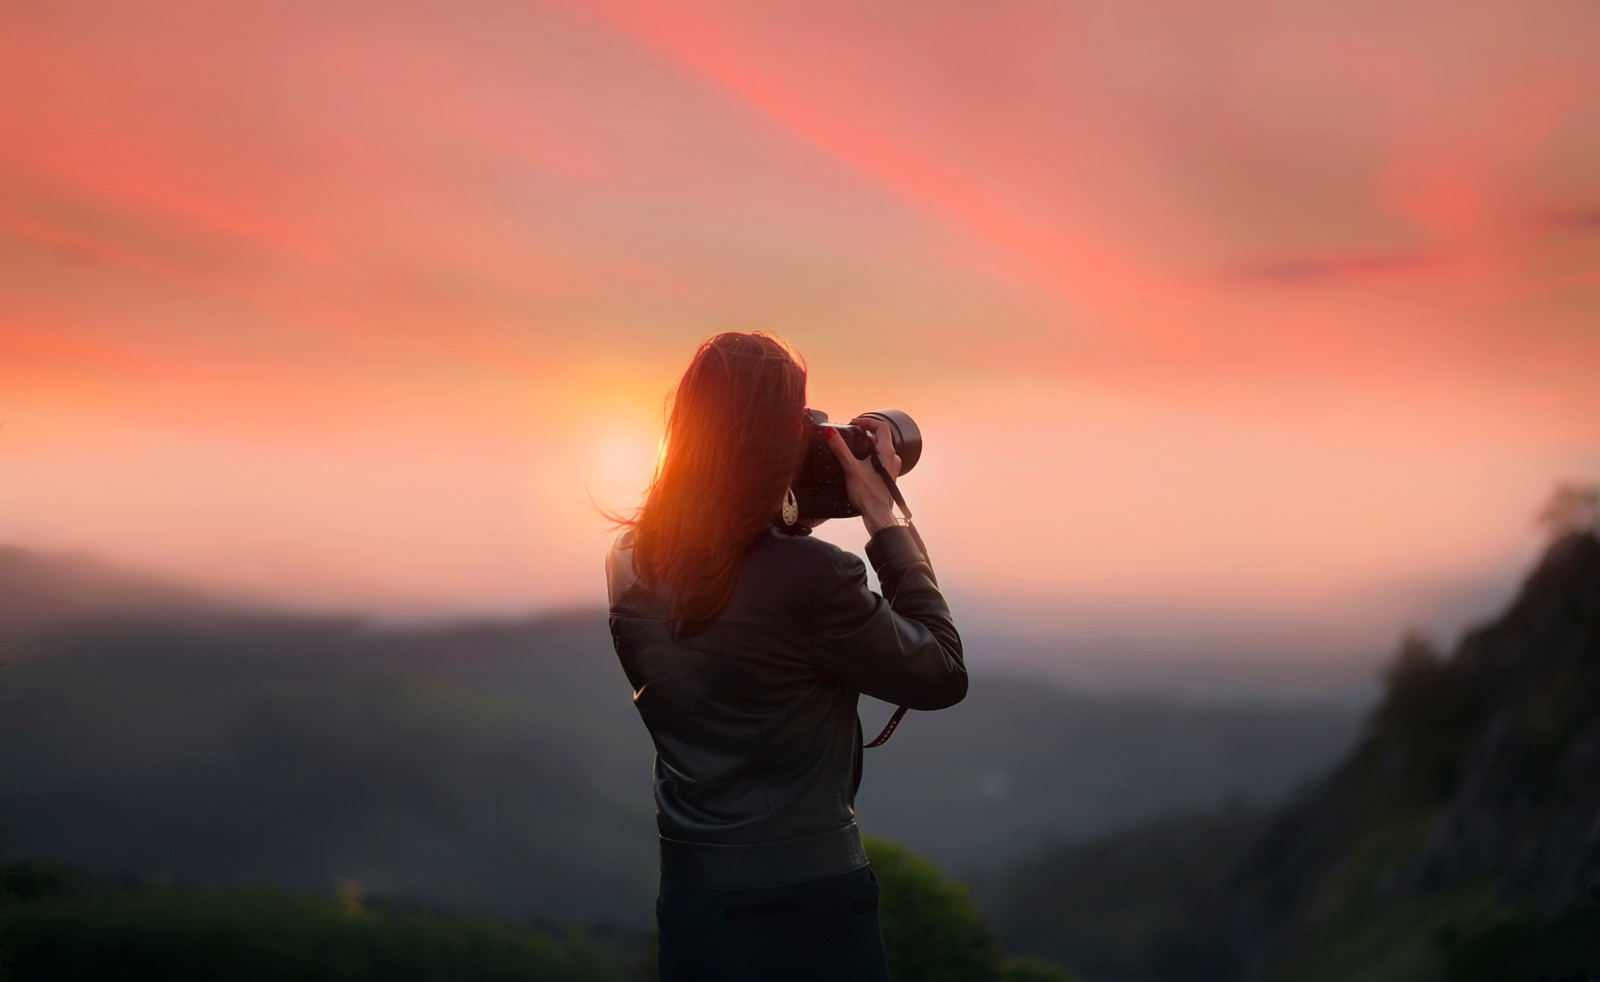 8 Ways Photography Can Improve Your Life